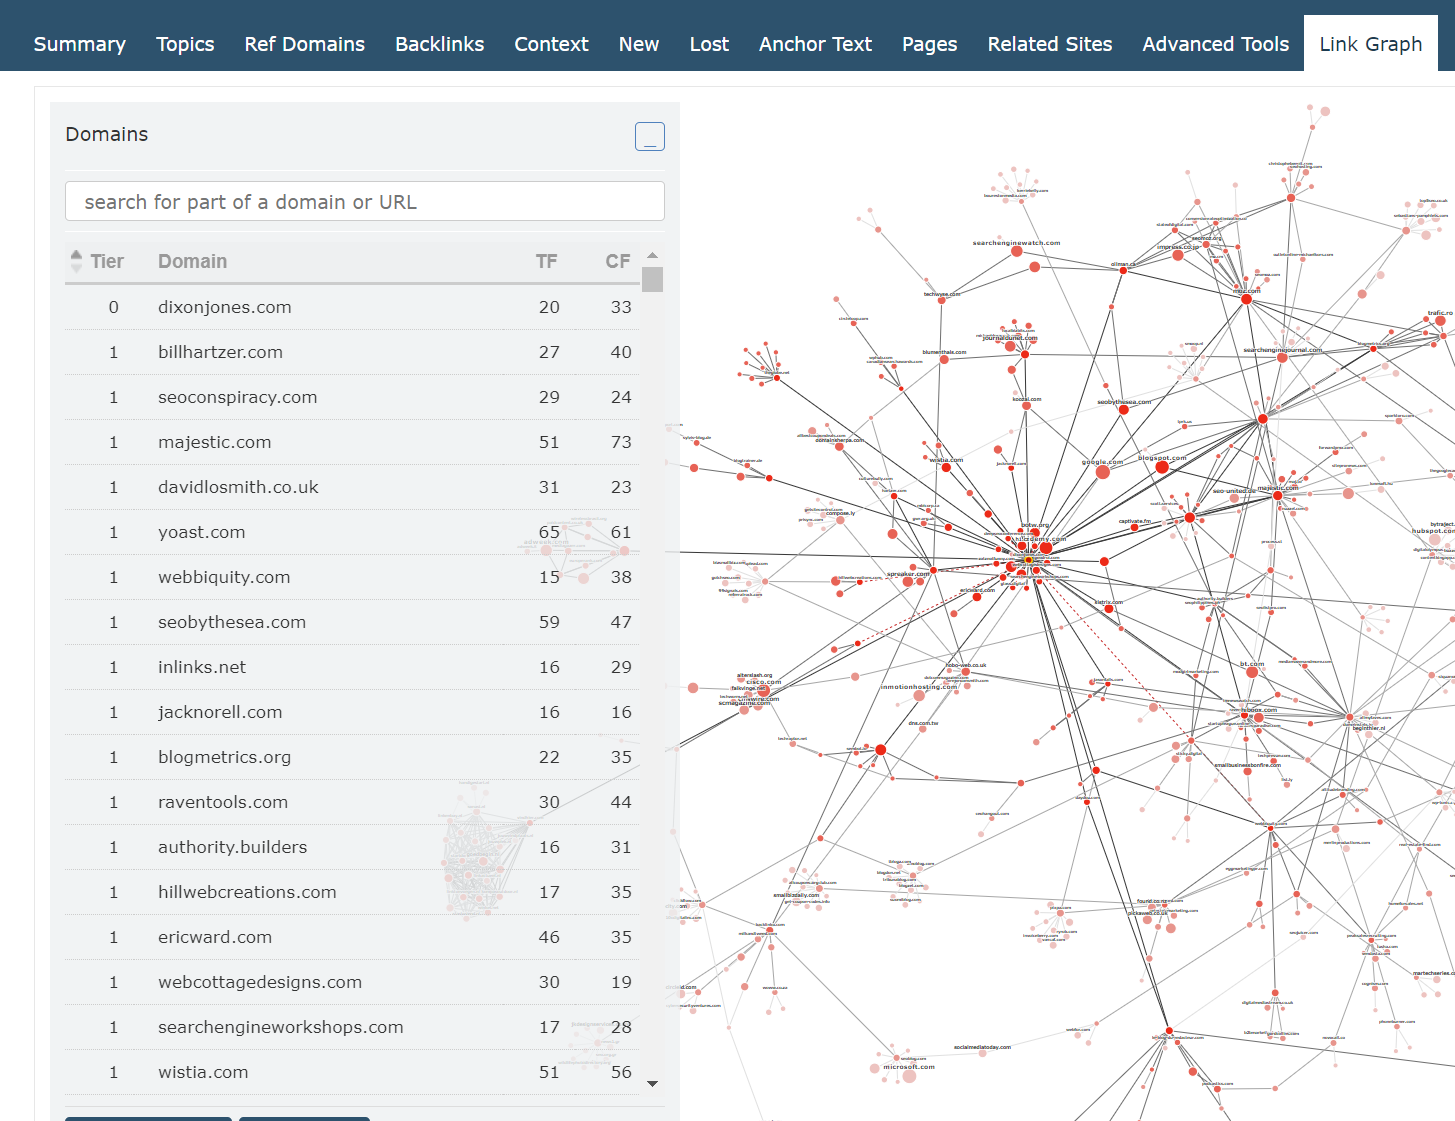 Showing the expanded Domains panel that lists all of the domains in the Link Graph